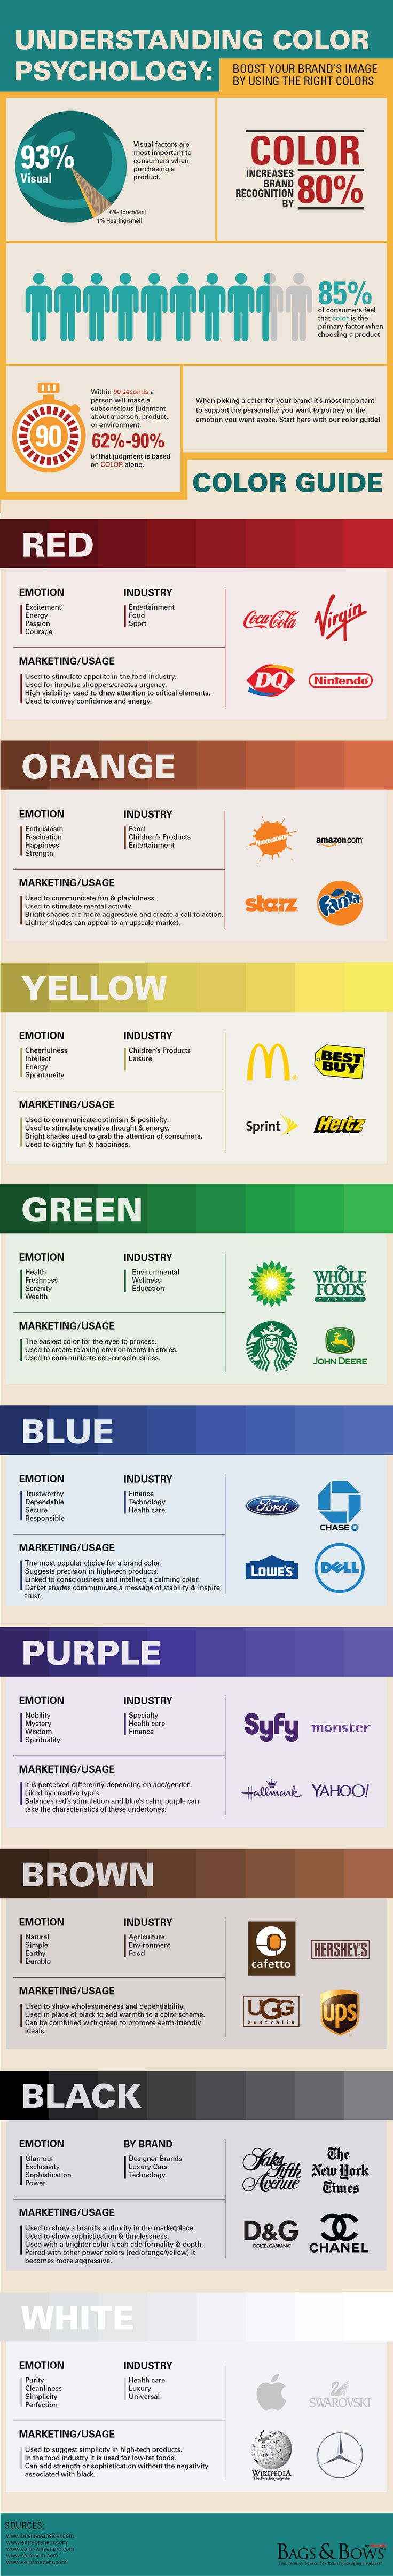 Understanding color psychology: boost your brand's image by using the right colors #infographic